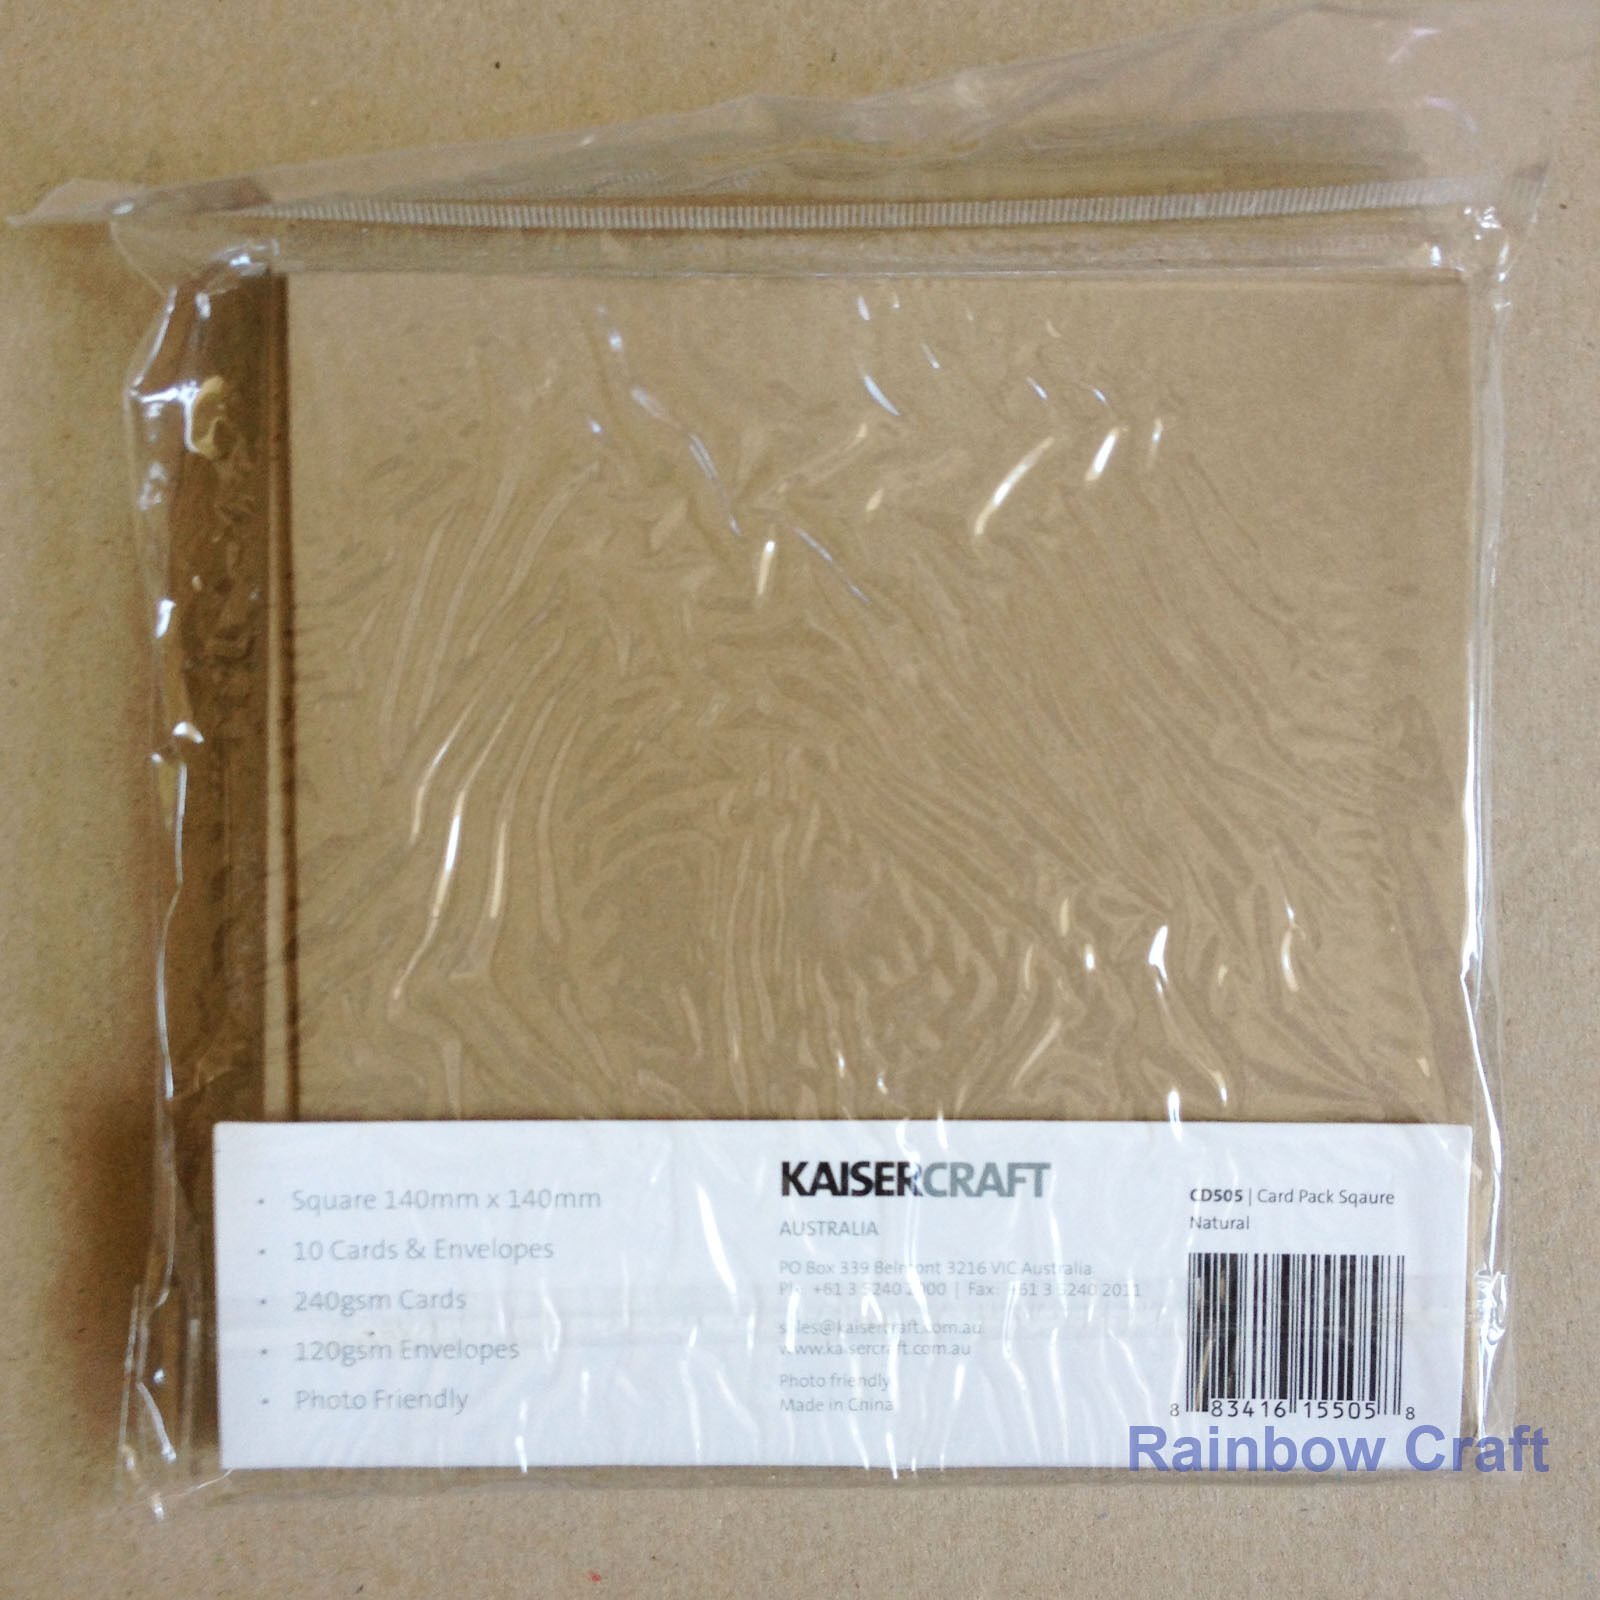 Kaisercraft 10 blank Cards & Envelopes Square / C6 size (12 selections) - Nature